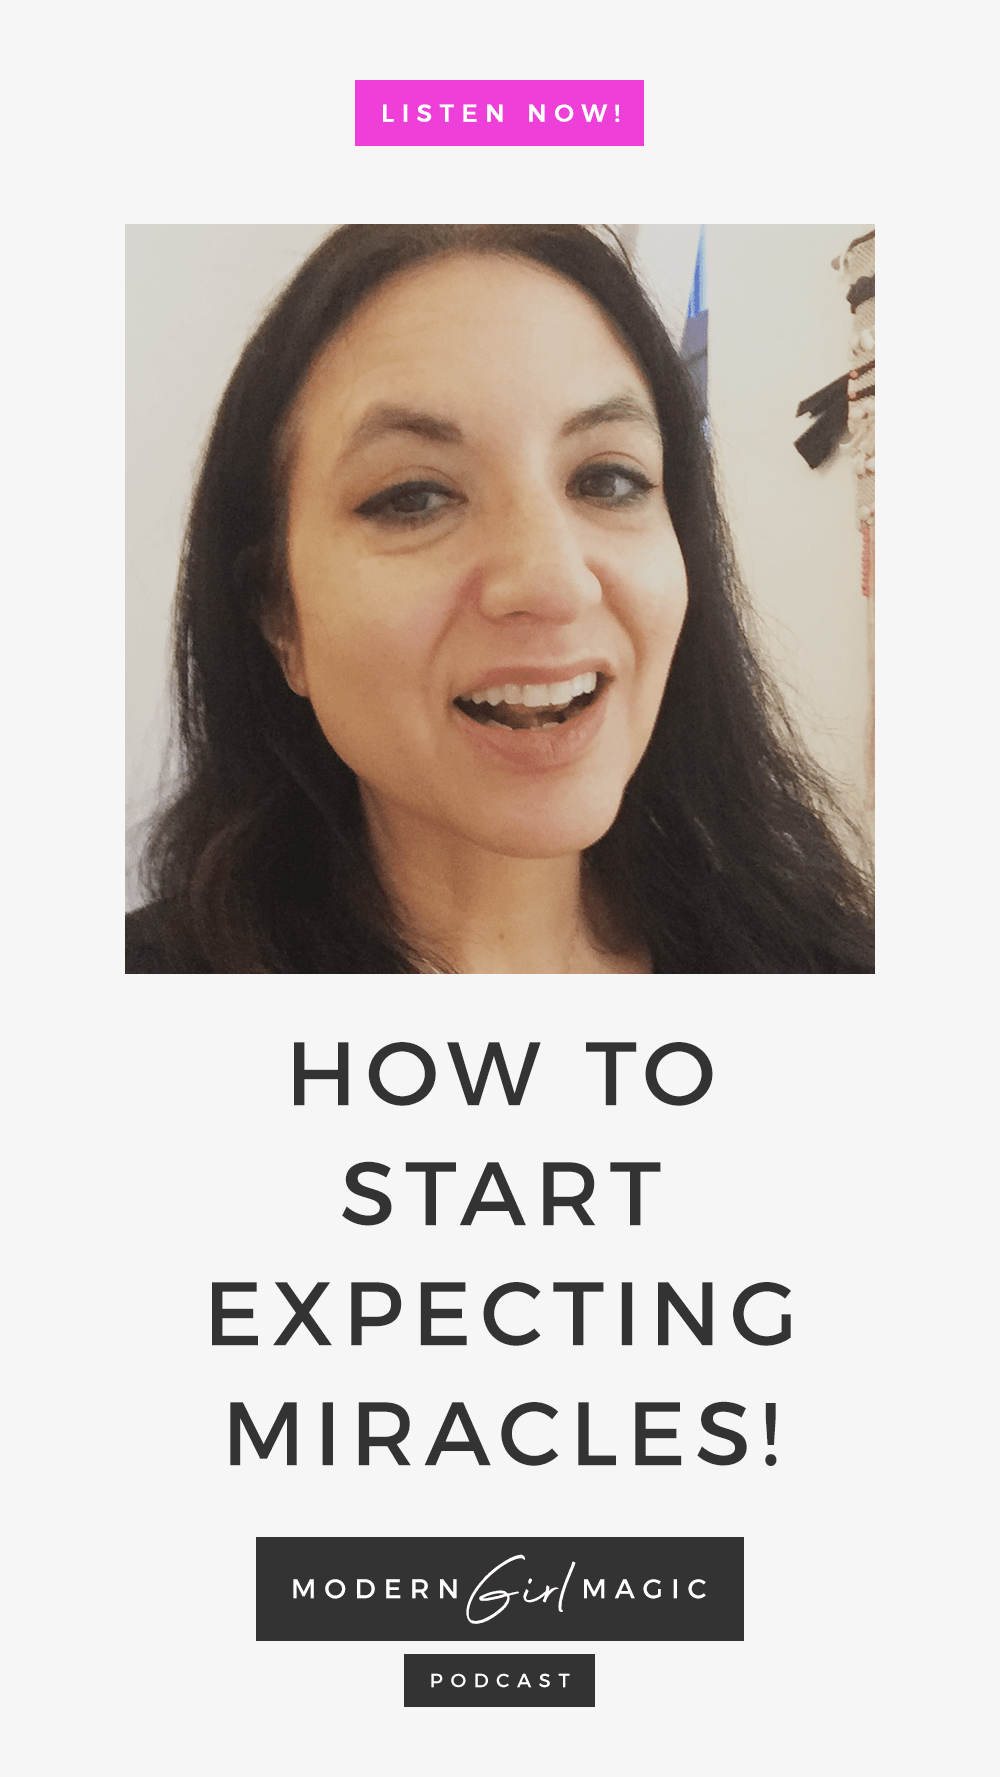 Modern Girl Magic Episode 17: Expecting Miracles